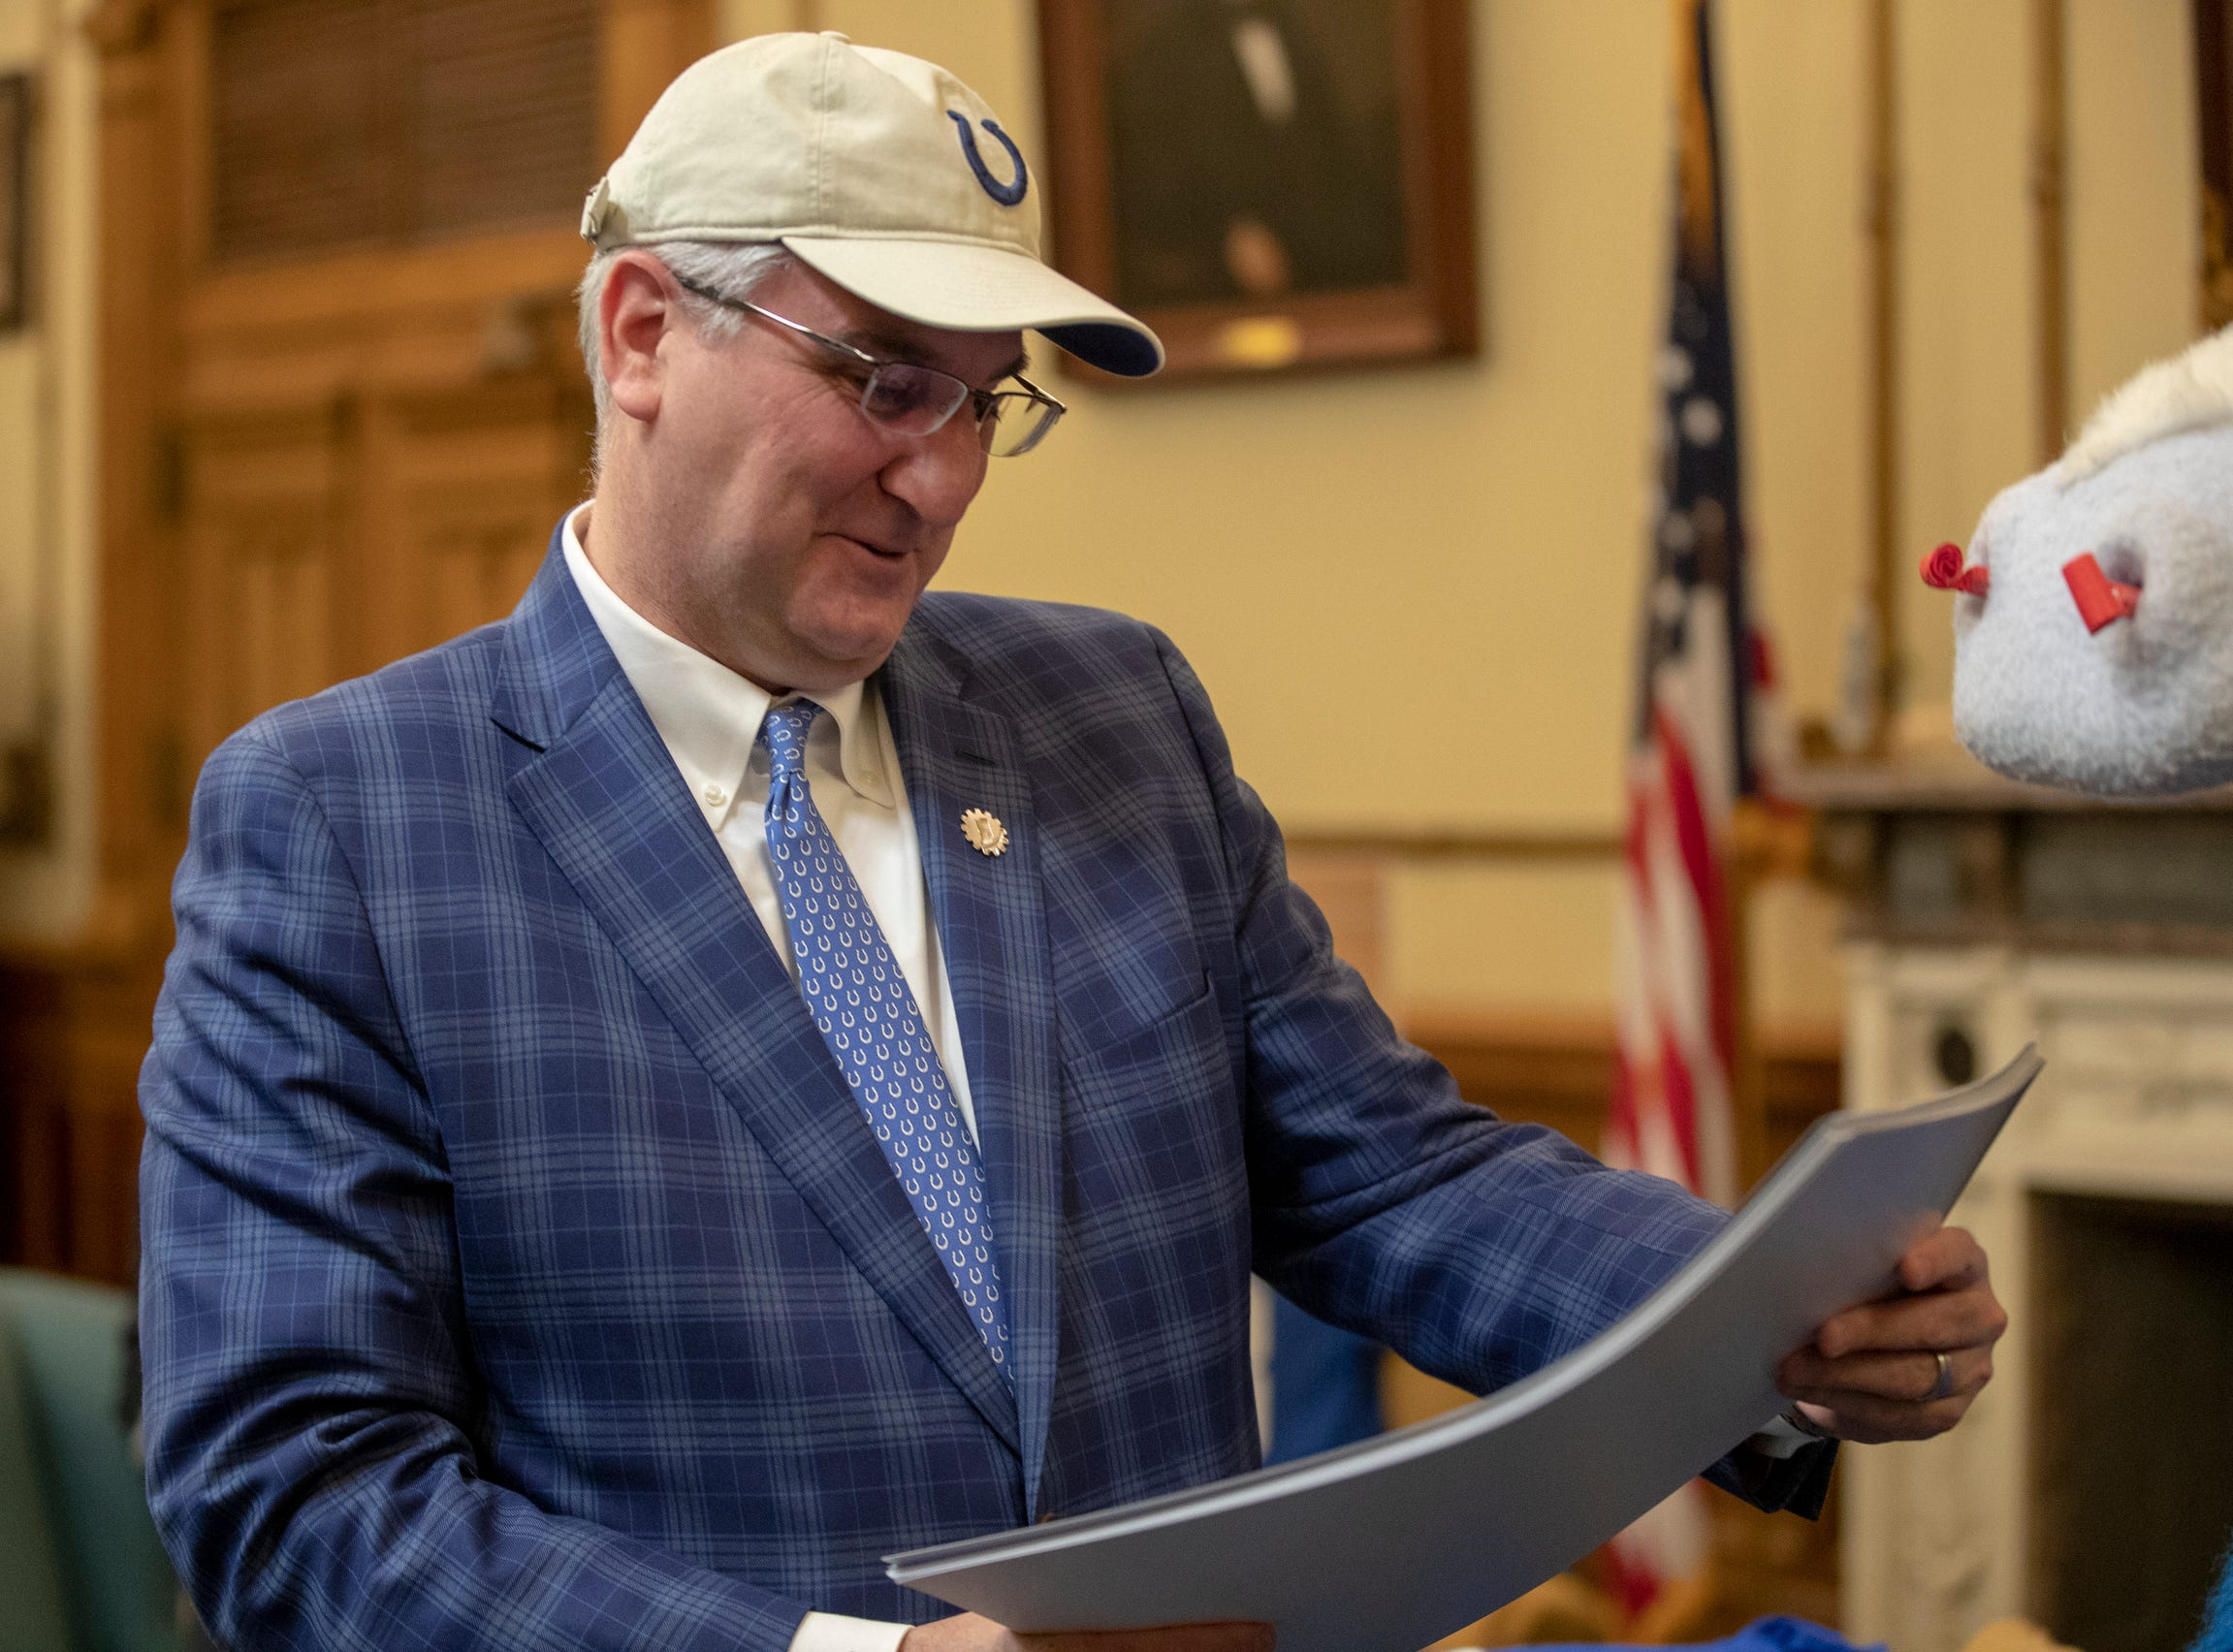 Indiana Governor Eric Holcomb looks at pro Colts banners that were just delivered to his office by mascot Blue. at the Indiana Statehouse, Indianapolis, Wednesday, January 3, 2019.